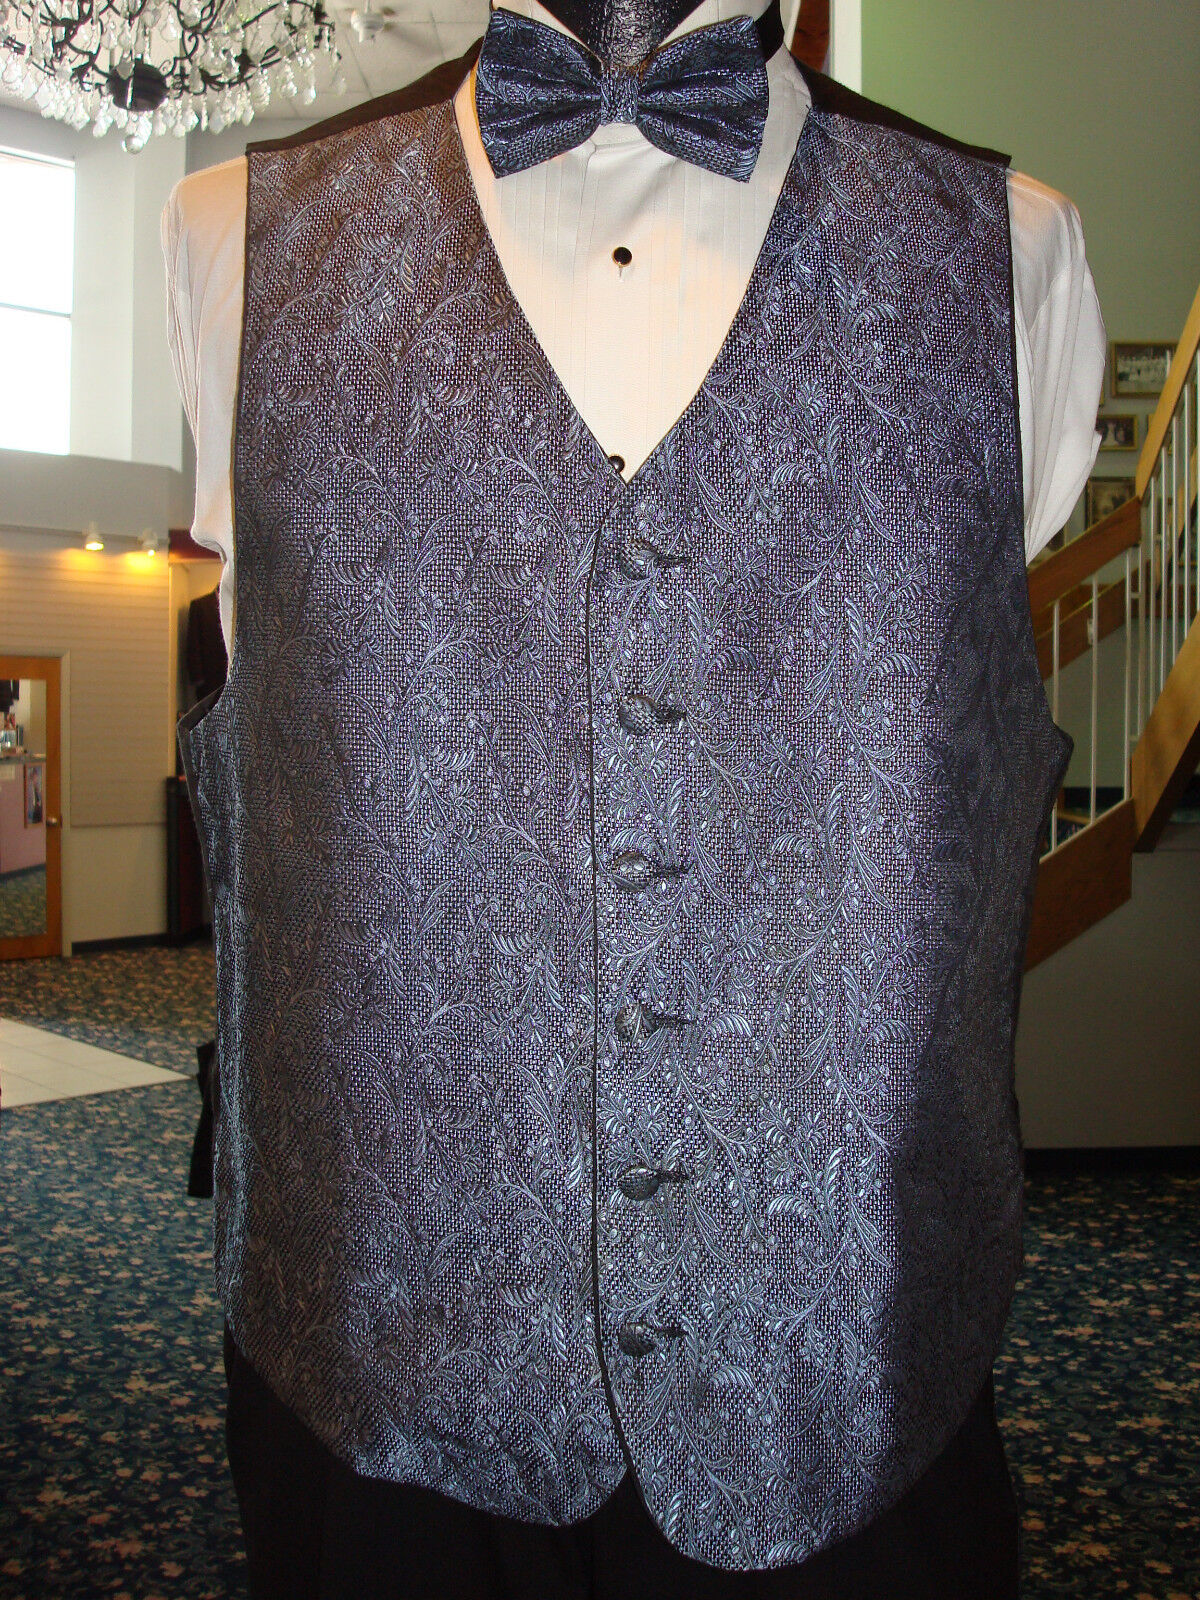 Periwinkle Floral Pattern Formal Vest w Matching Bow & Hanky Fullback - Mens S